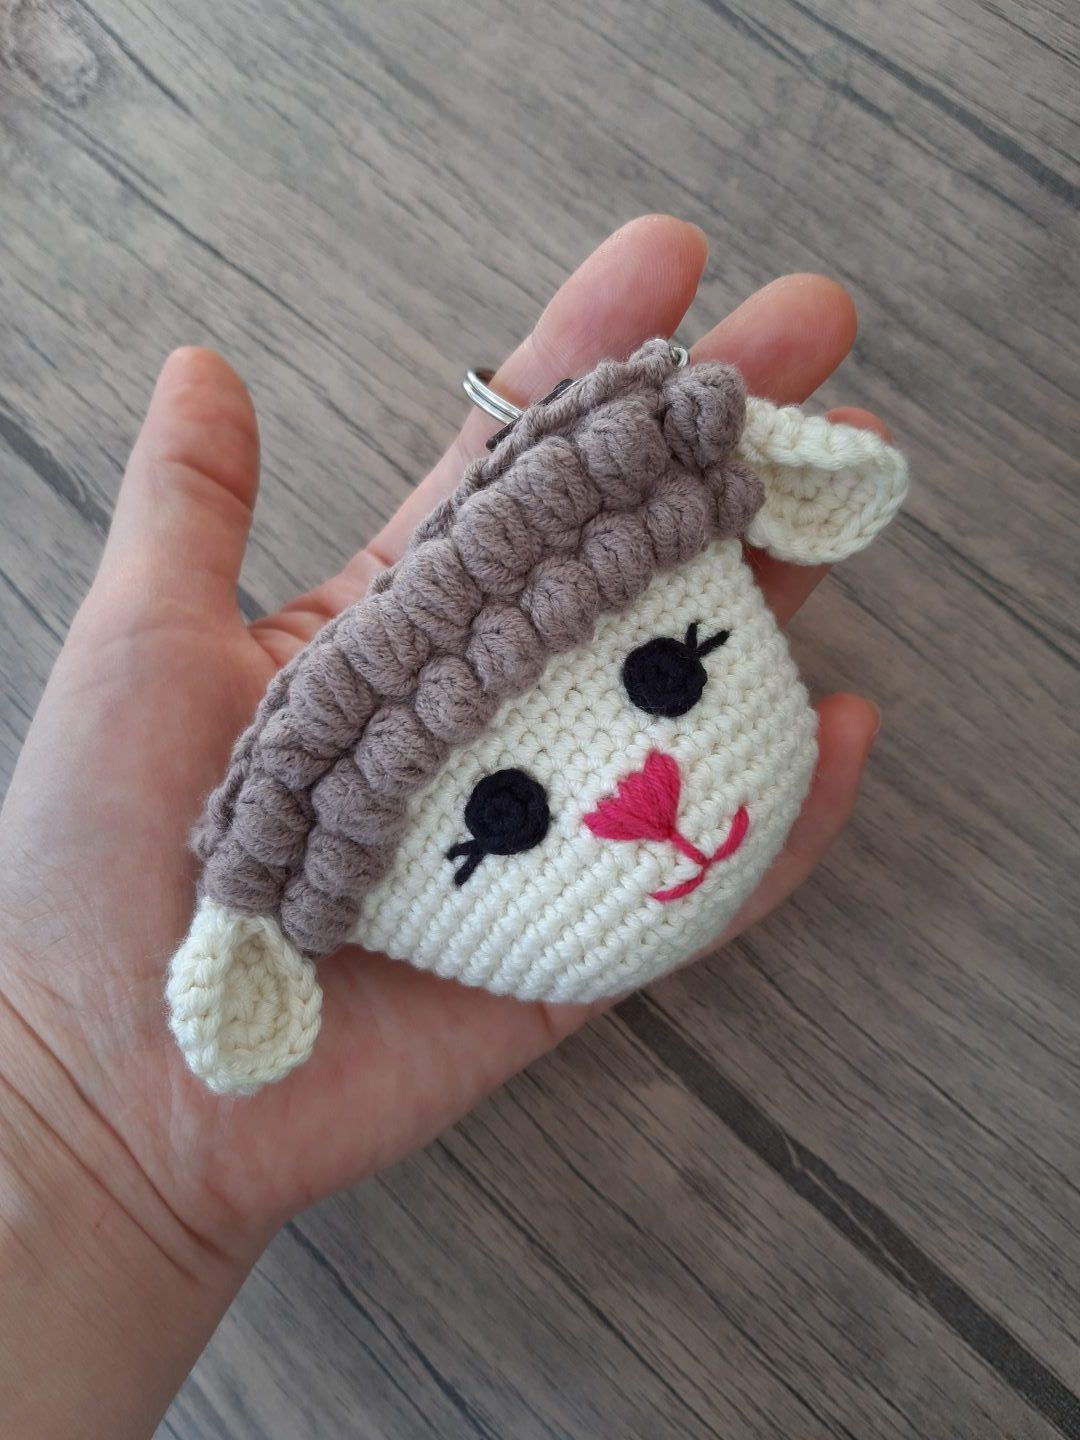 Amigurumi Kuzu Yapımı |Amigurumi Sheep Tutorial | Part 1 ... | 1440x1080